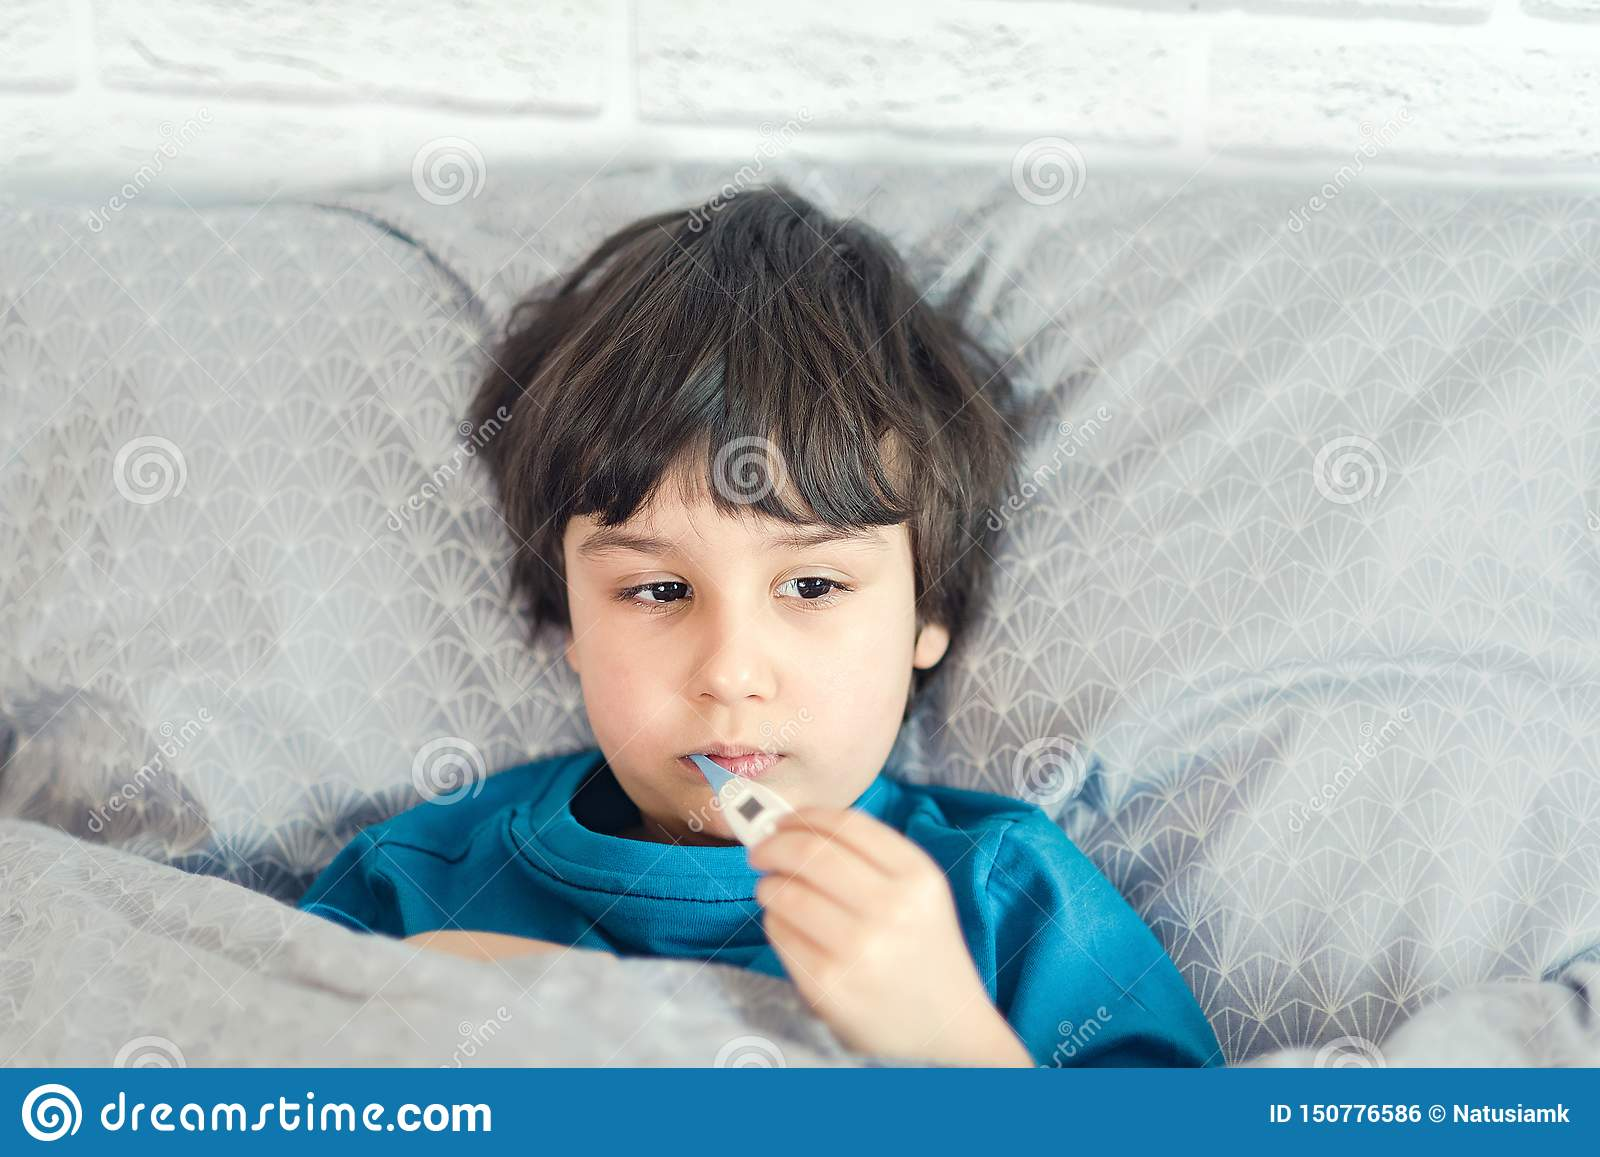 Child flu sick, boy with medical thermometer in mouth, health illness. Kid with cold rhinitis, get cold